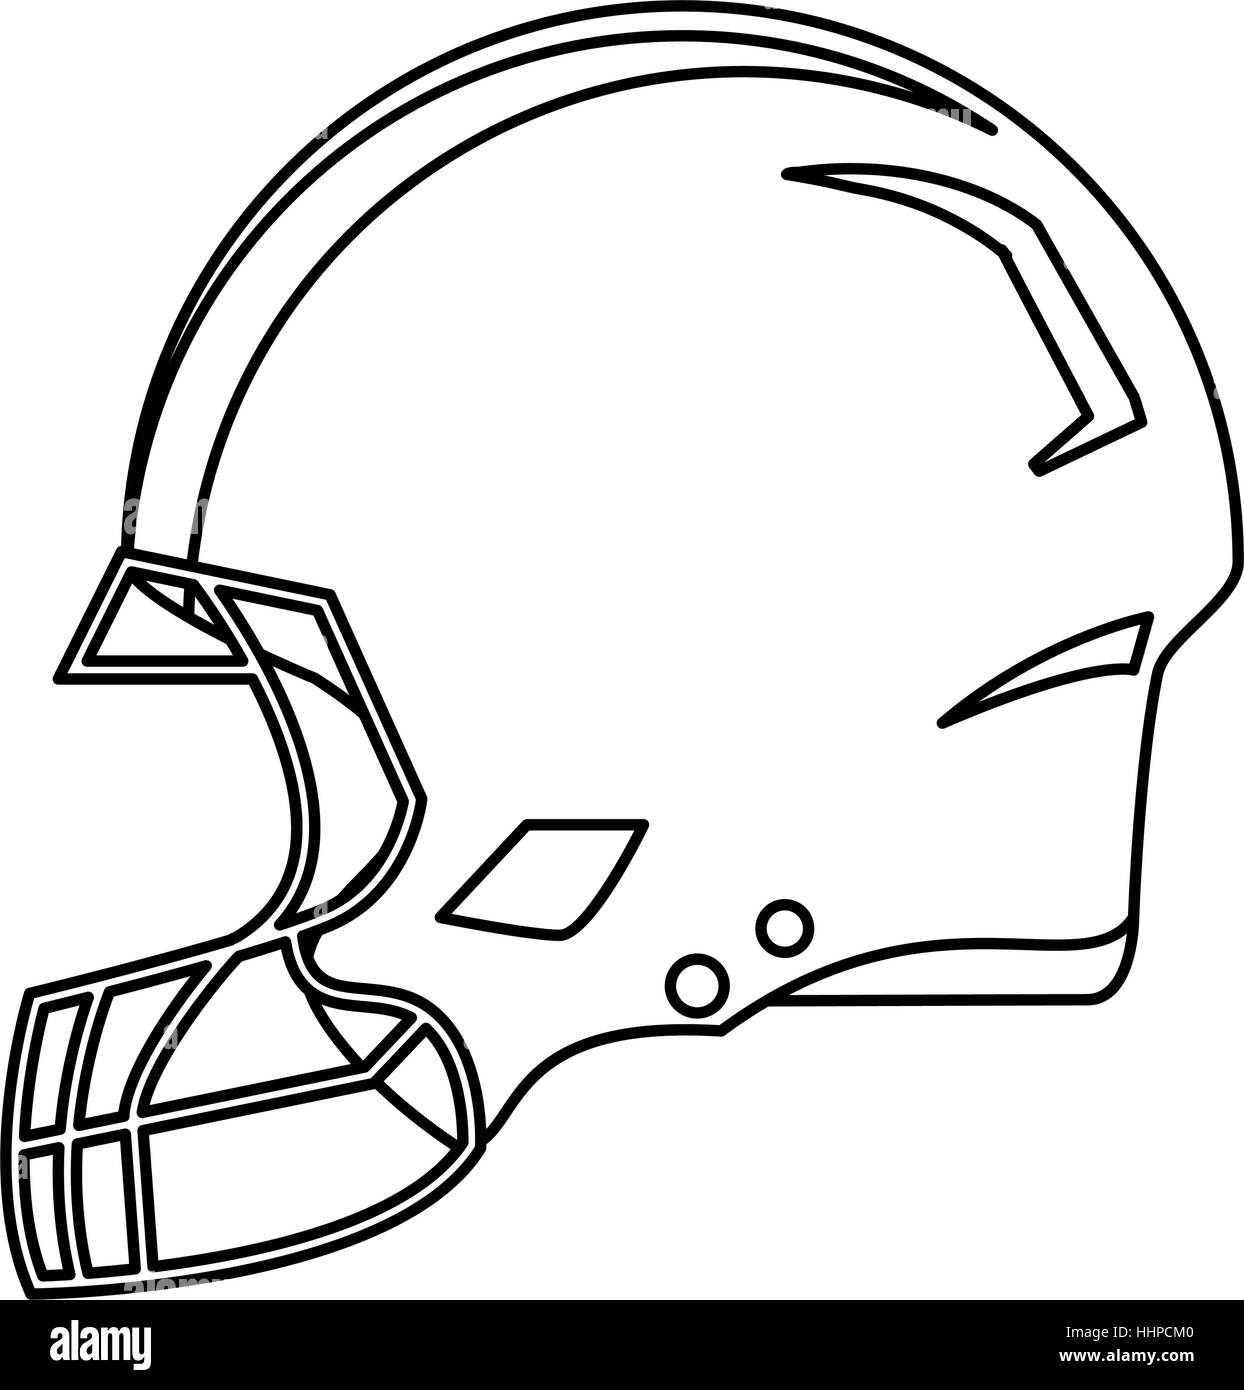 american football outline - photo #9